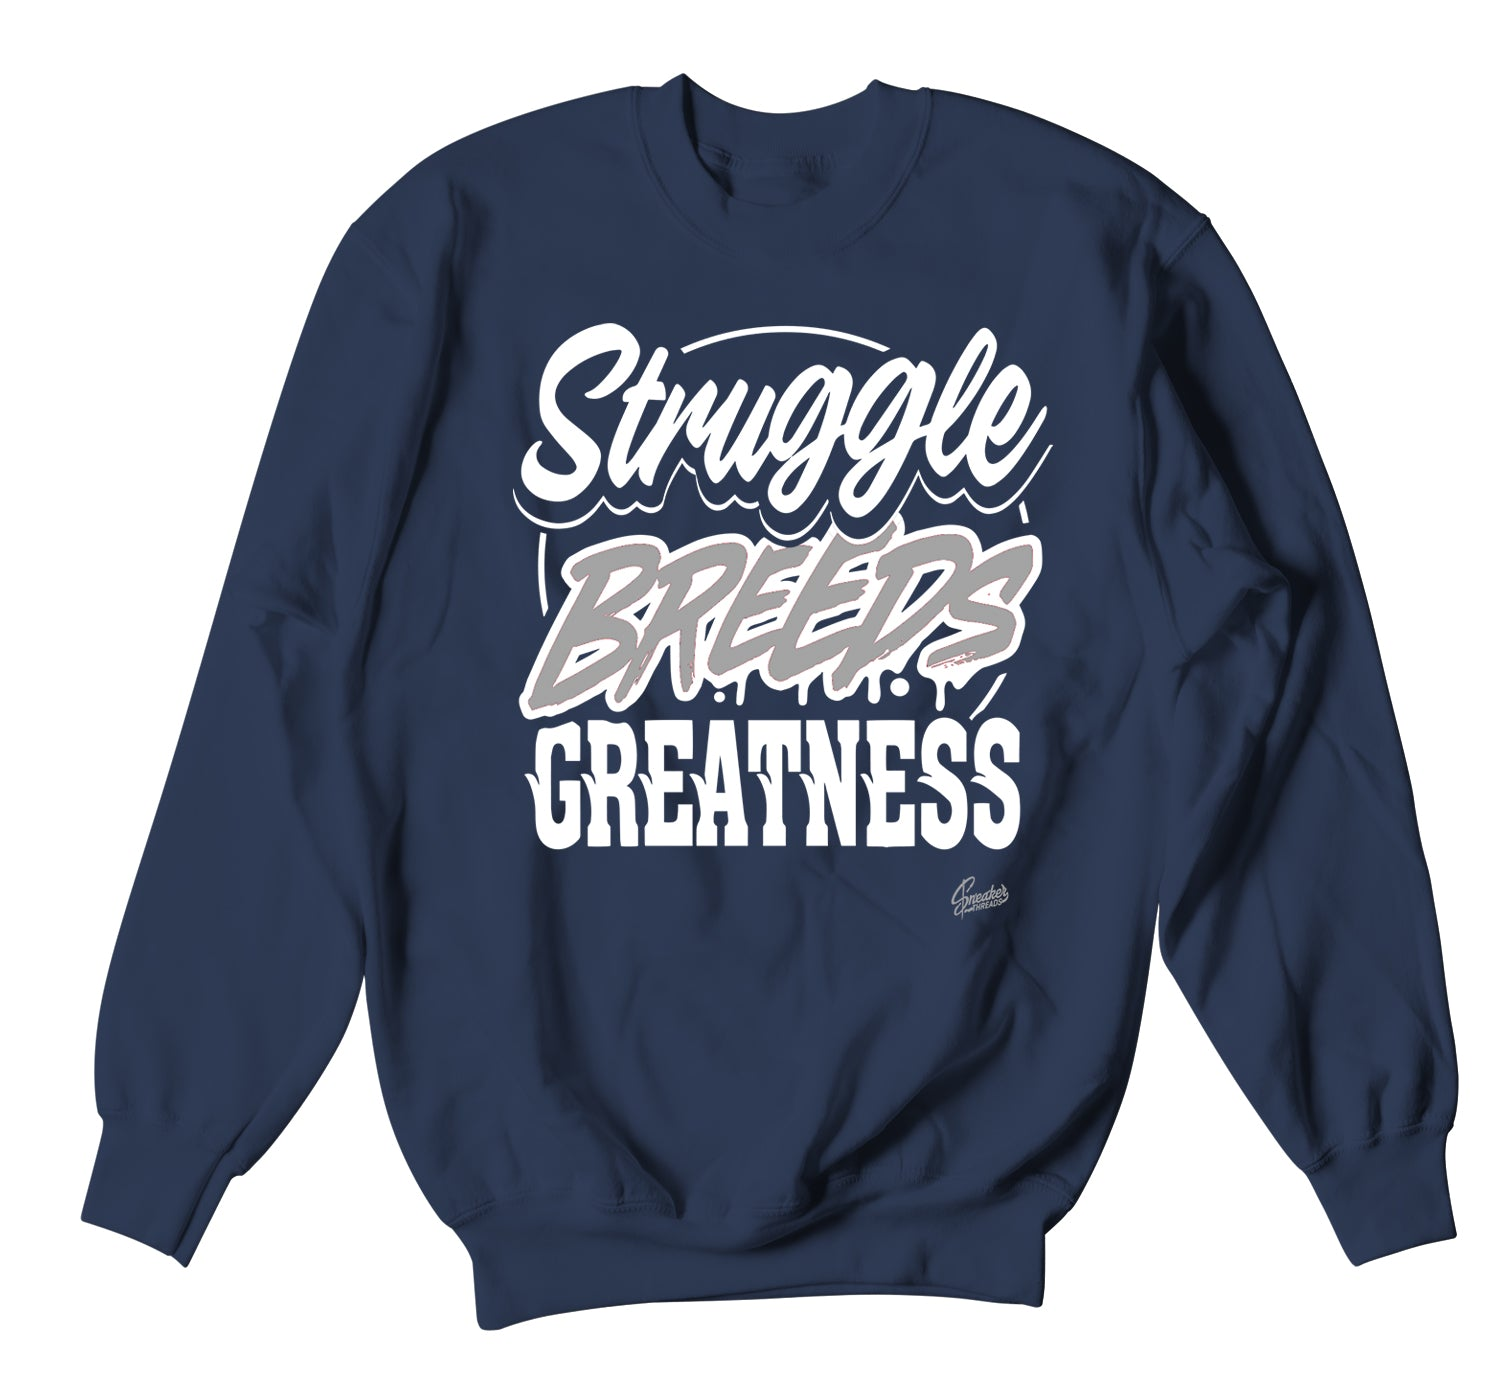 crewneck sweater collection matching with mens jordan 1 midnight navy sneaker collection